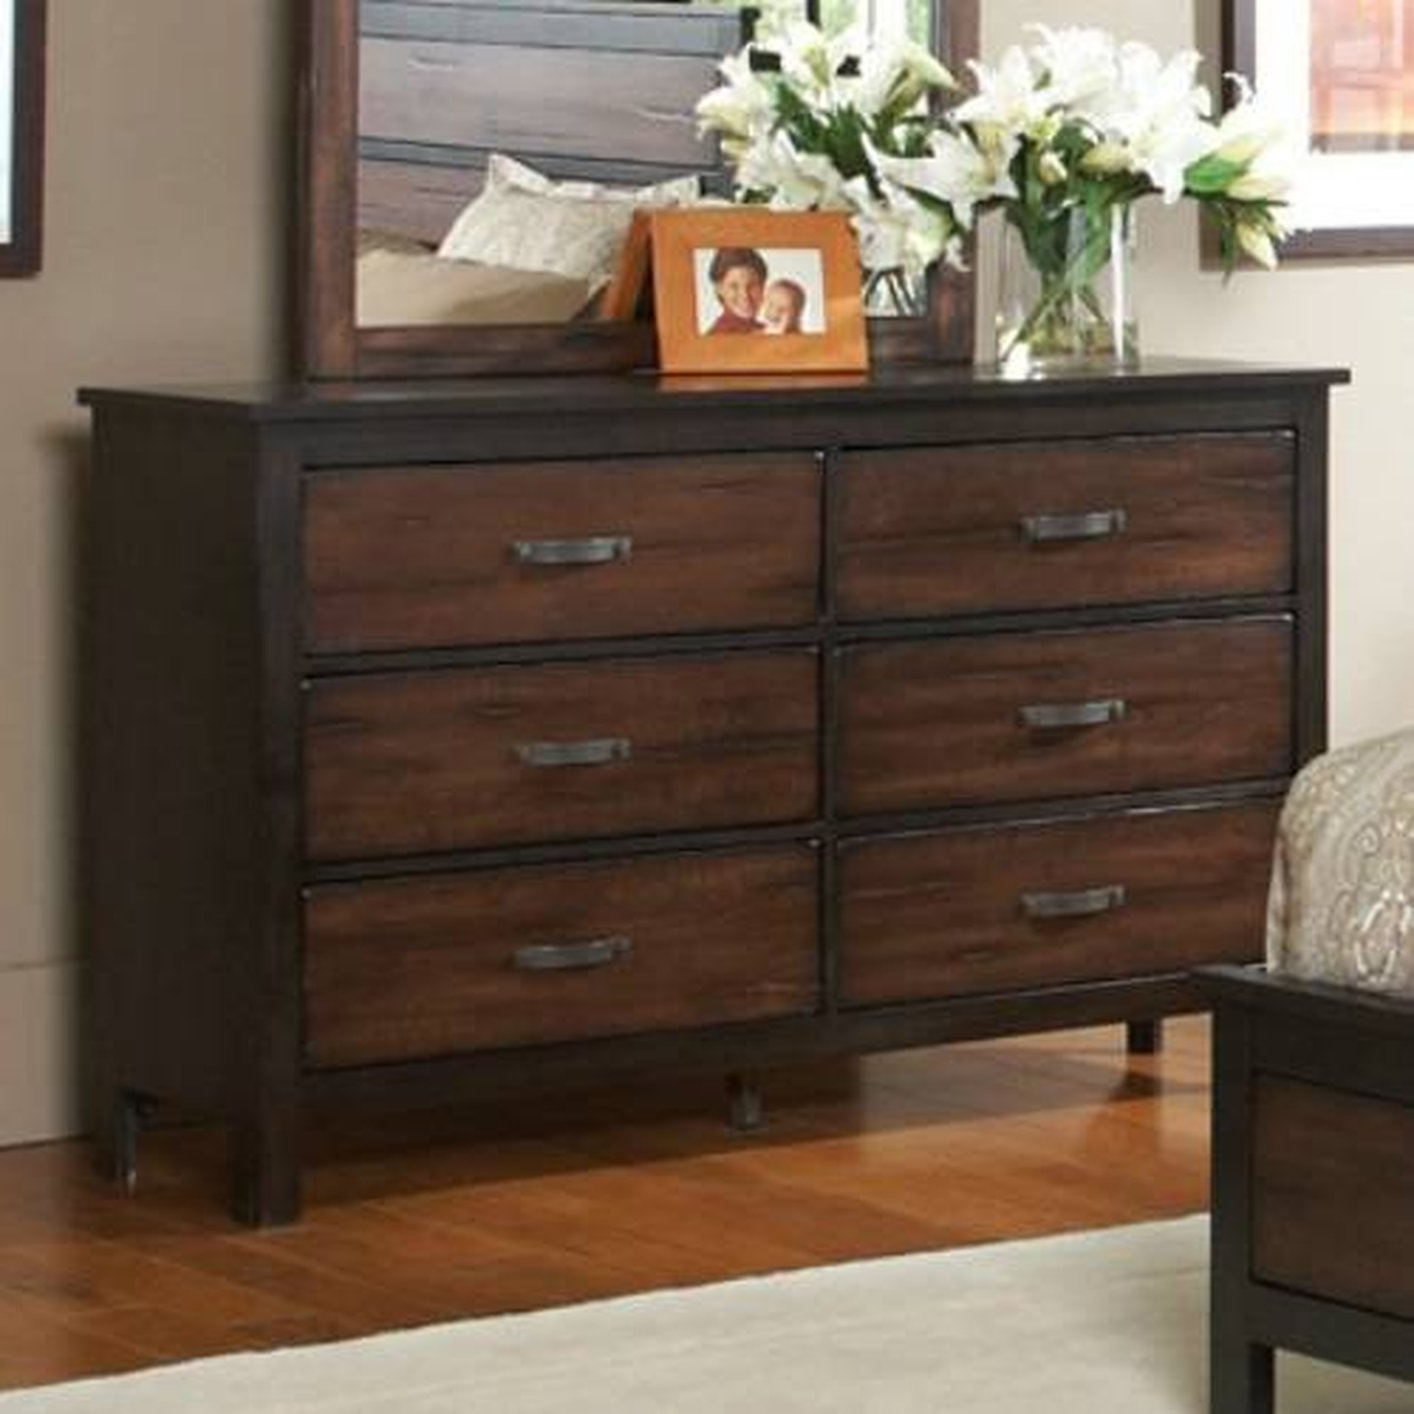 Black Wood Dresser Steal A Sofa Furniture Outlet Los Angeles Ca